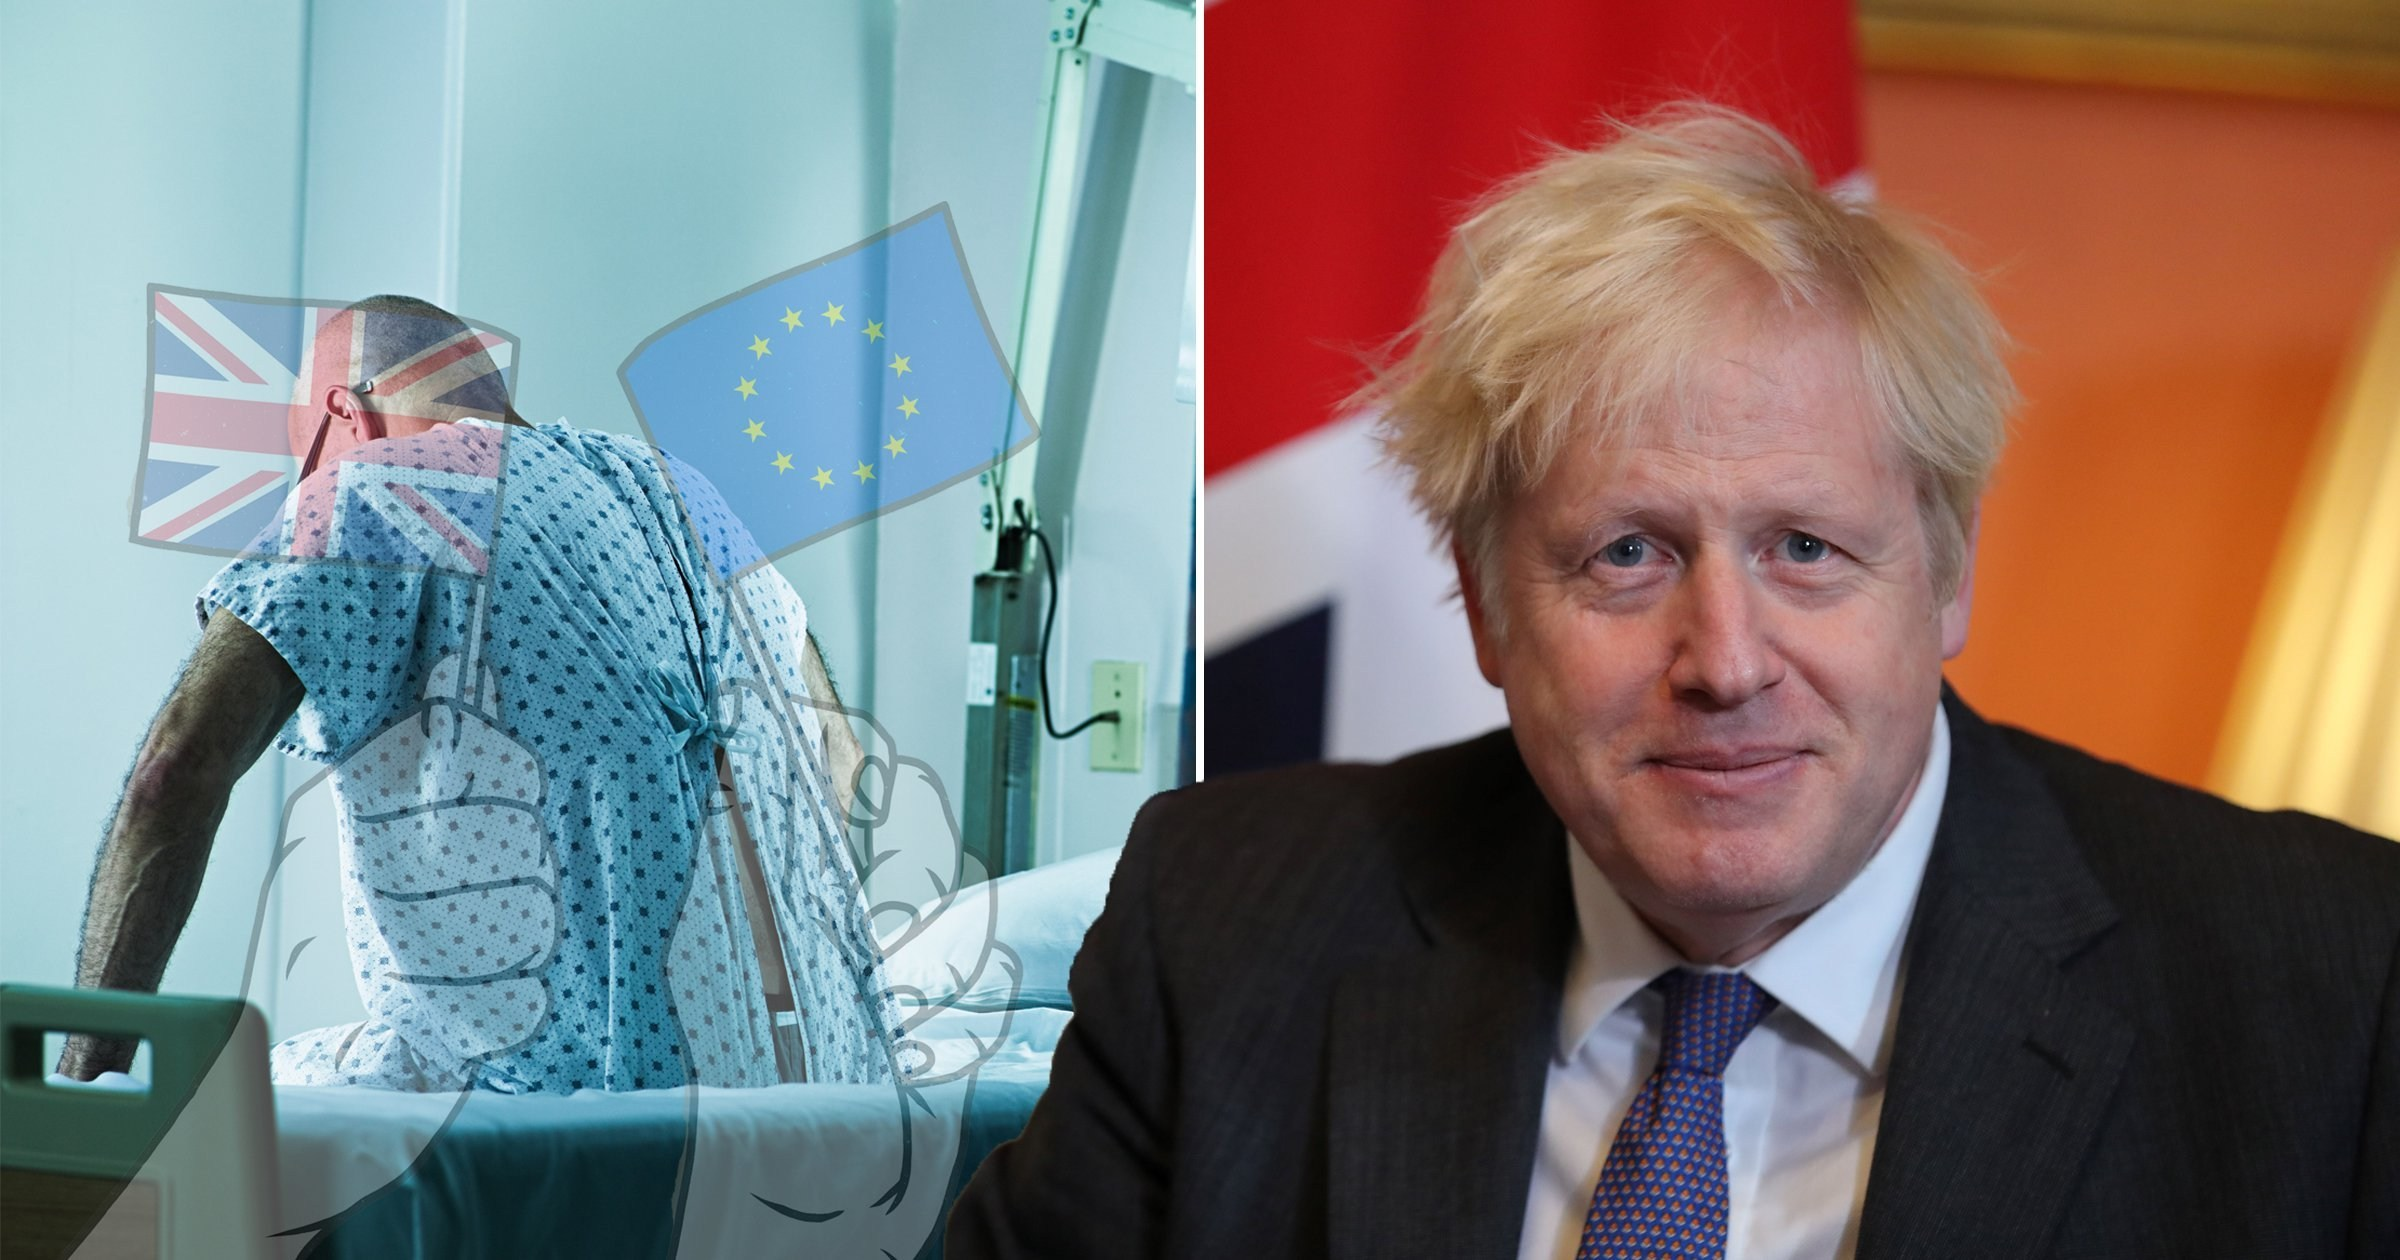 No-deal Brexit could risk lives of 4,000,000 Brits with rare diseases